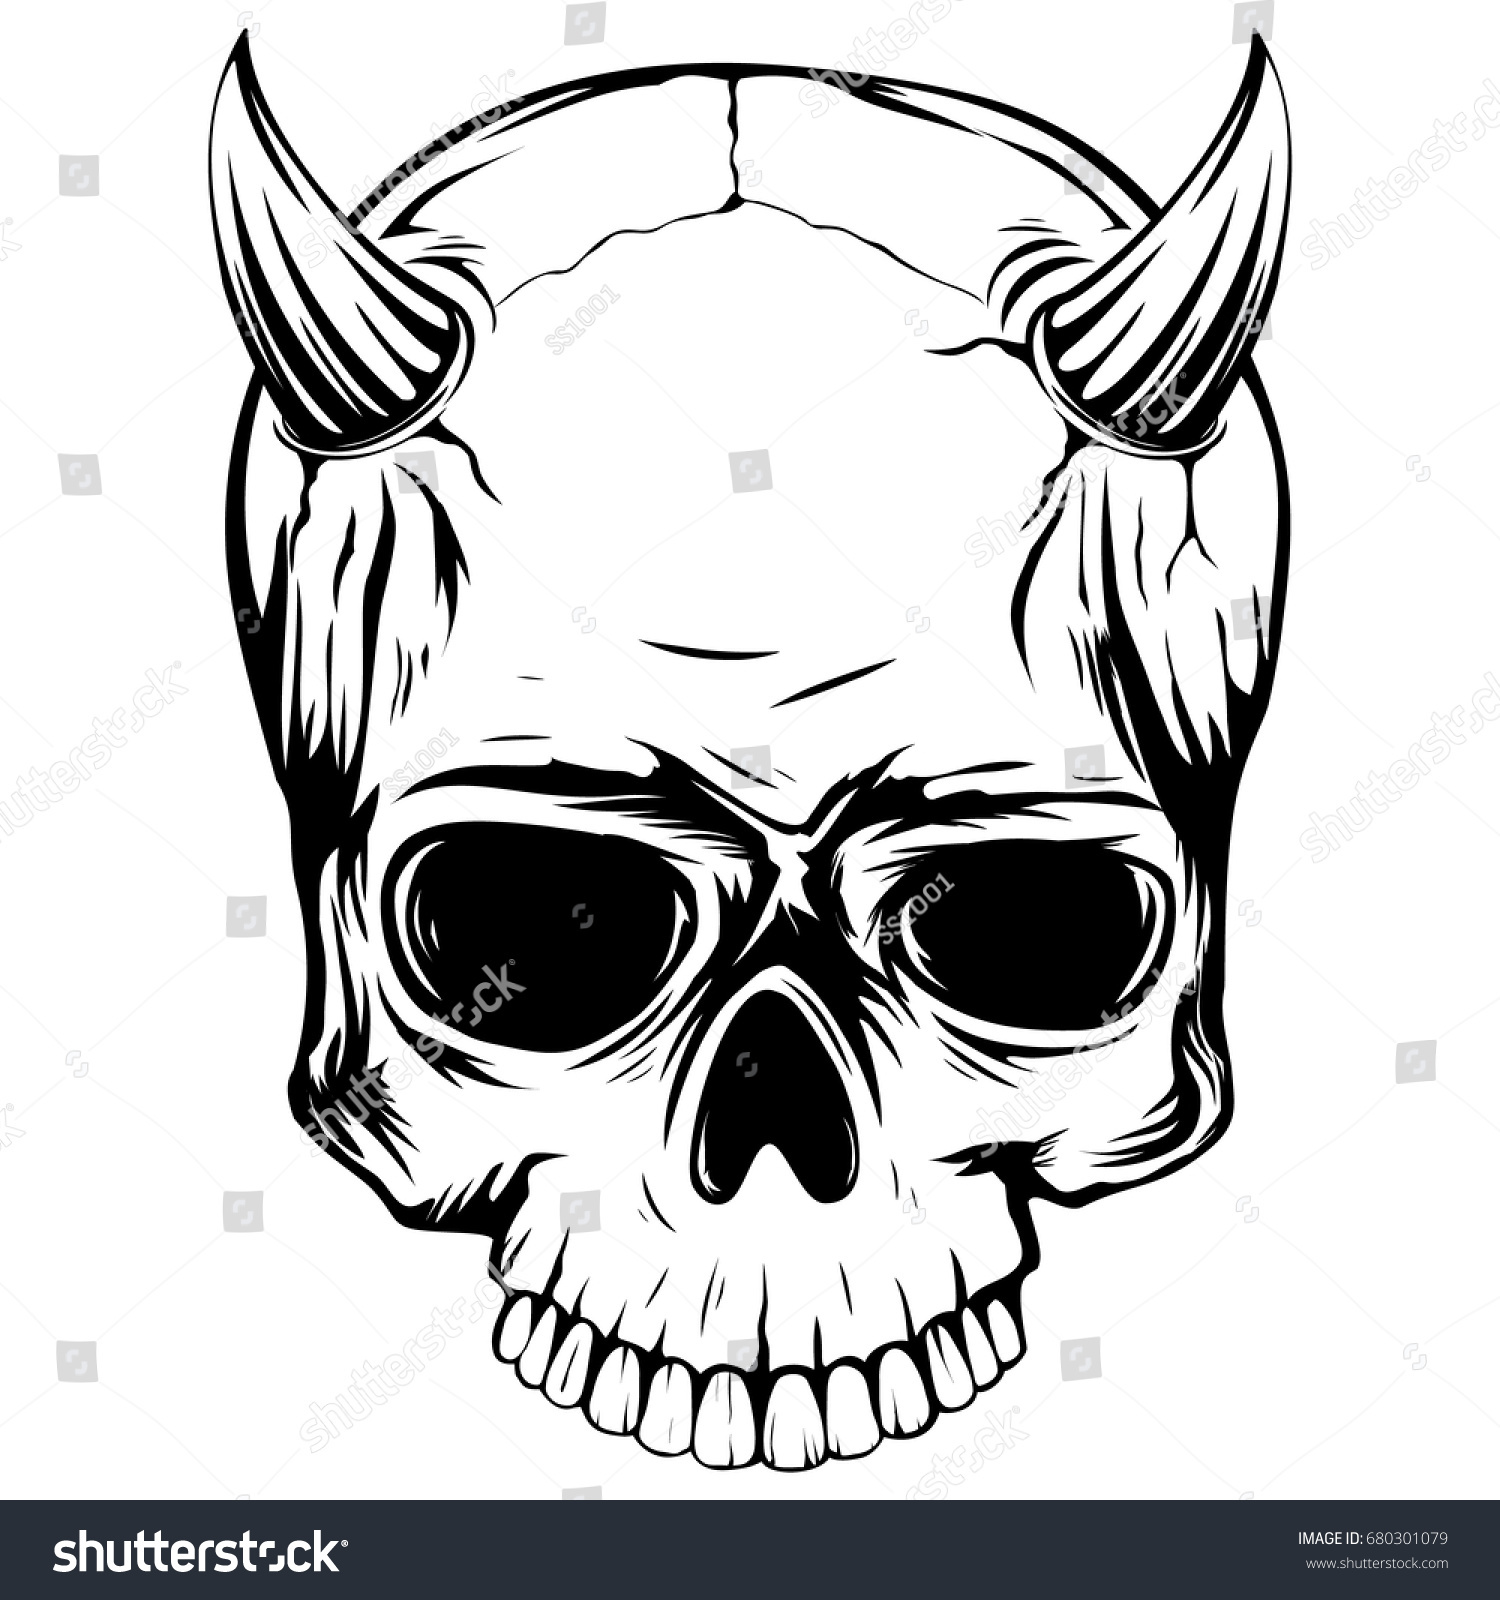 4c3aff99 Abstract vector illustration black and white skull demon with horns. Design  for tattoo or print t-shirt . - Vector